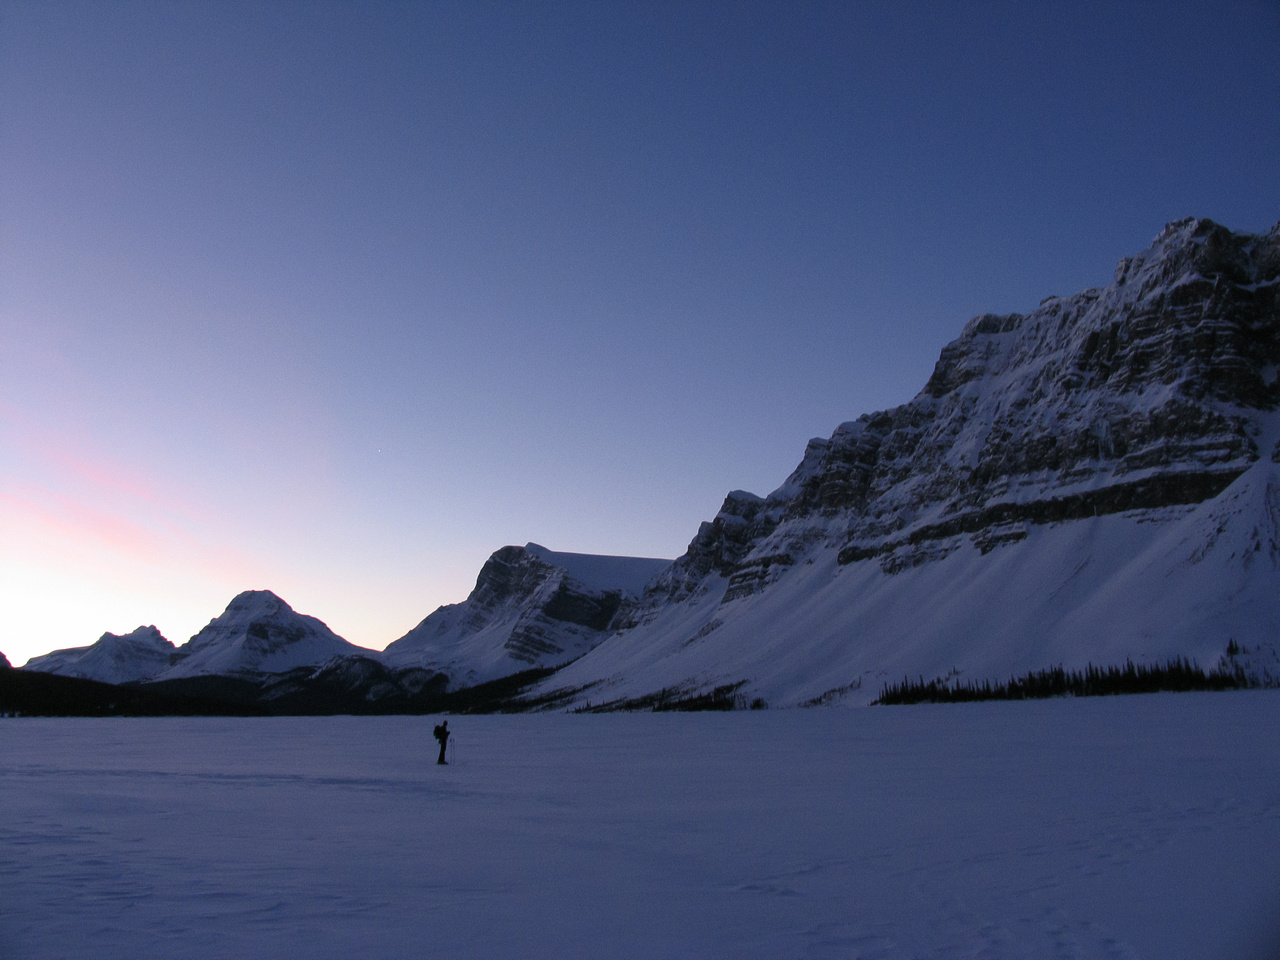 A clear, cold morning as we cross Bow Lake - always the coldest place around. Bow Peak in the distance at left.